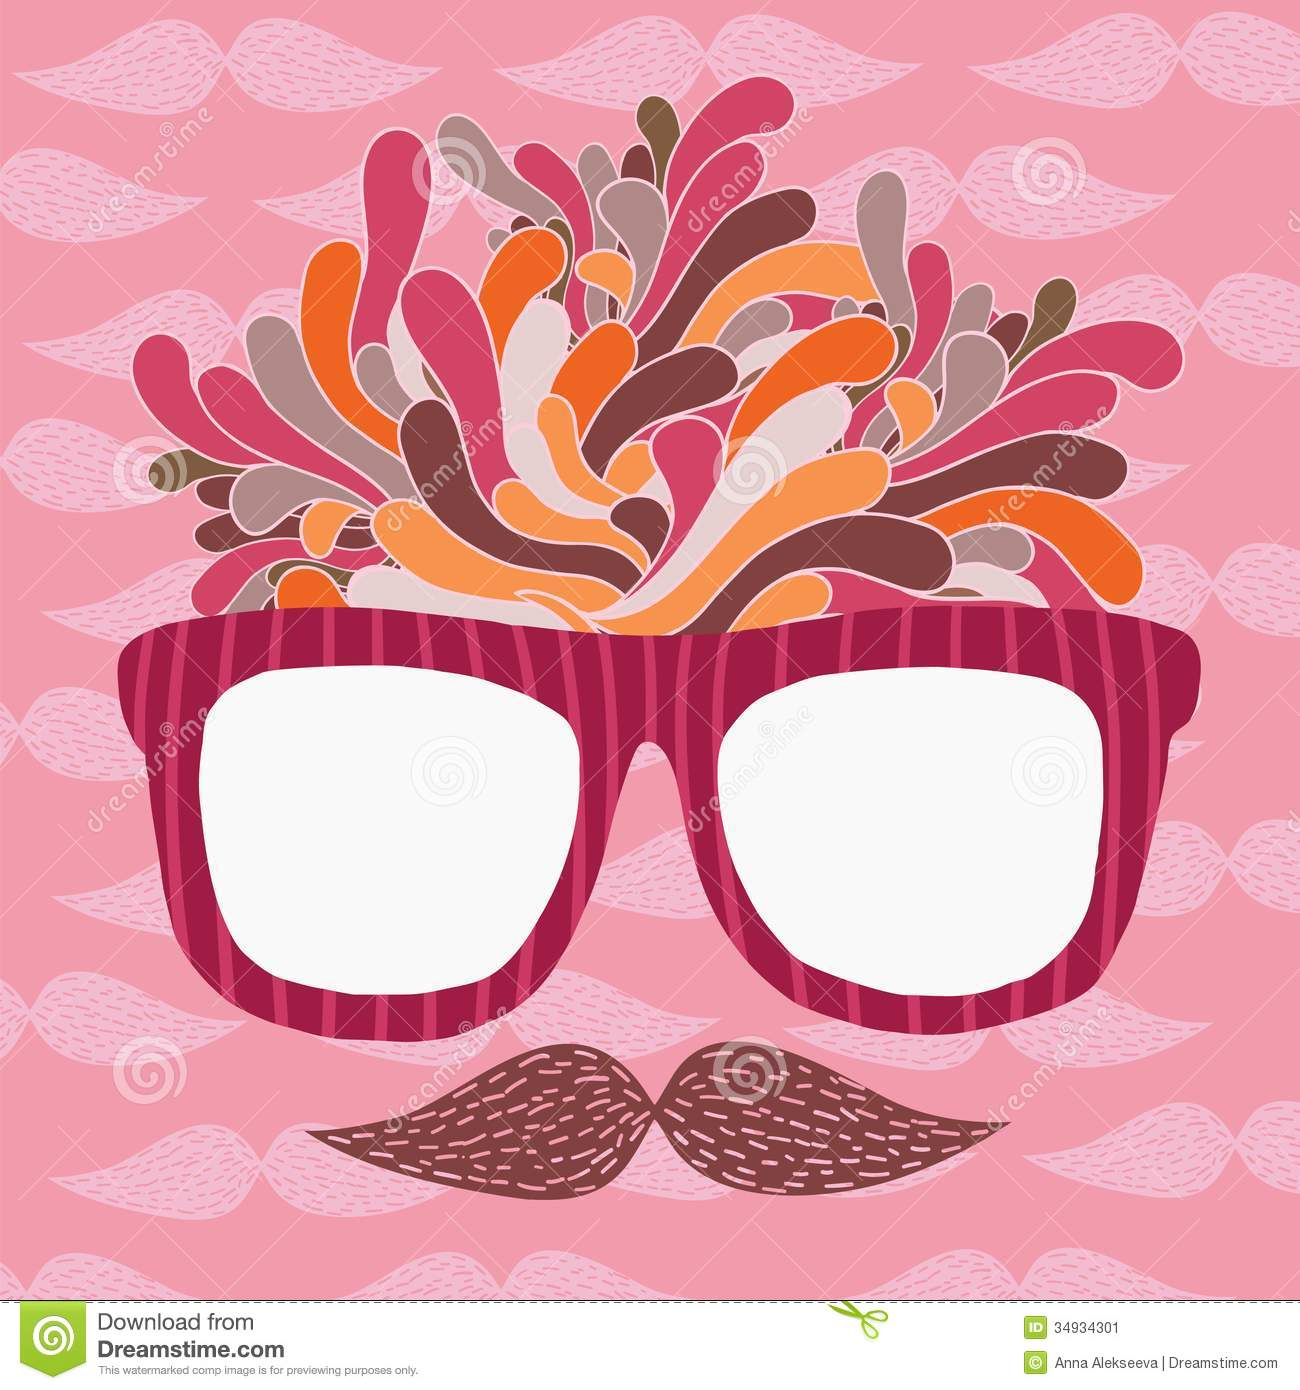 Cute Cartoon Doodle Hipster Glasses And Mustache Stock ...